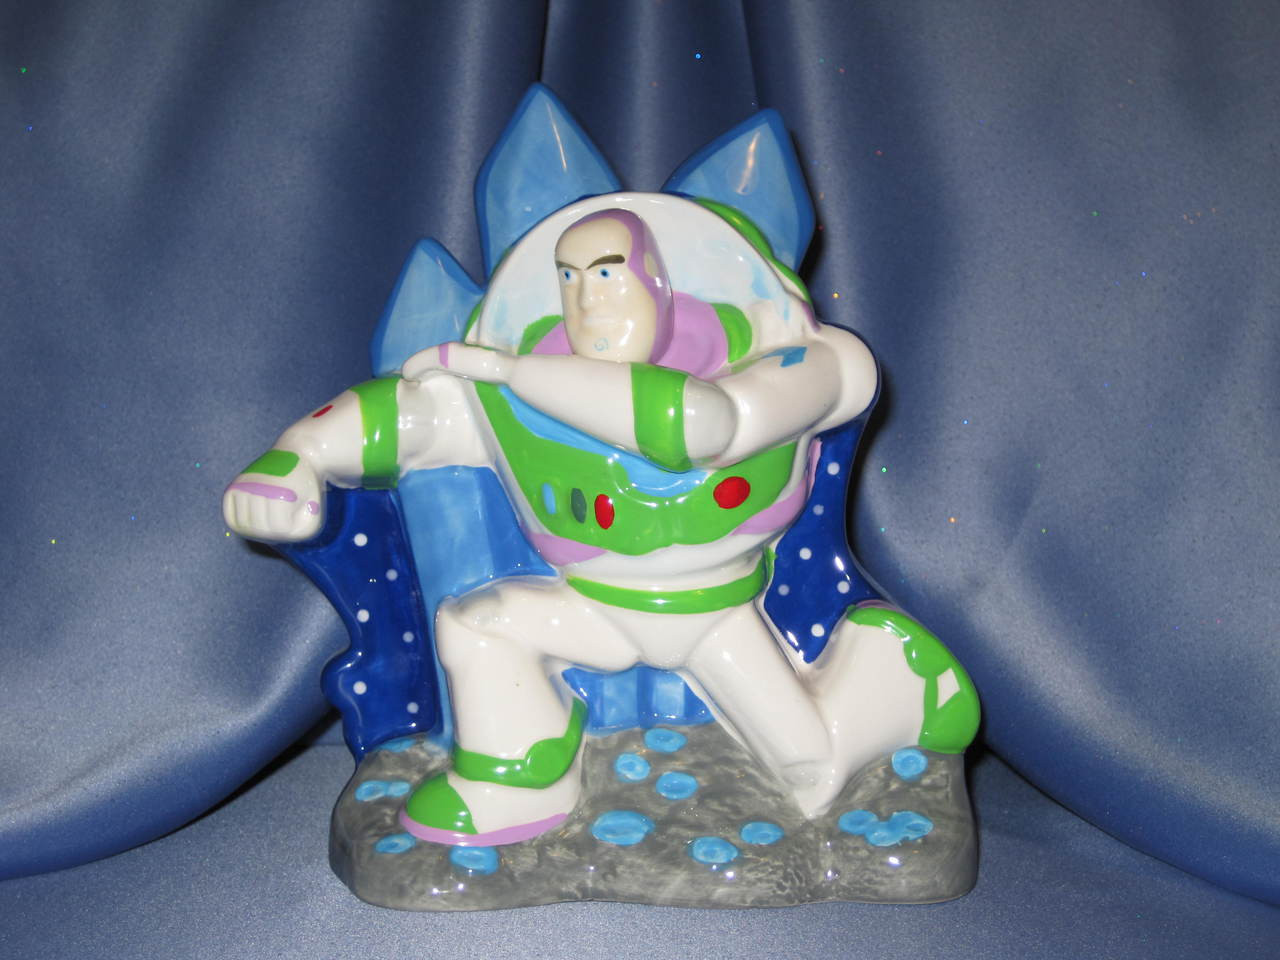 Buzz Lightyear of Toy Story Ceramic Coin Bank.